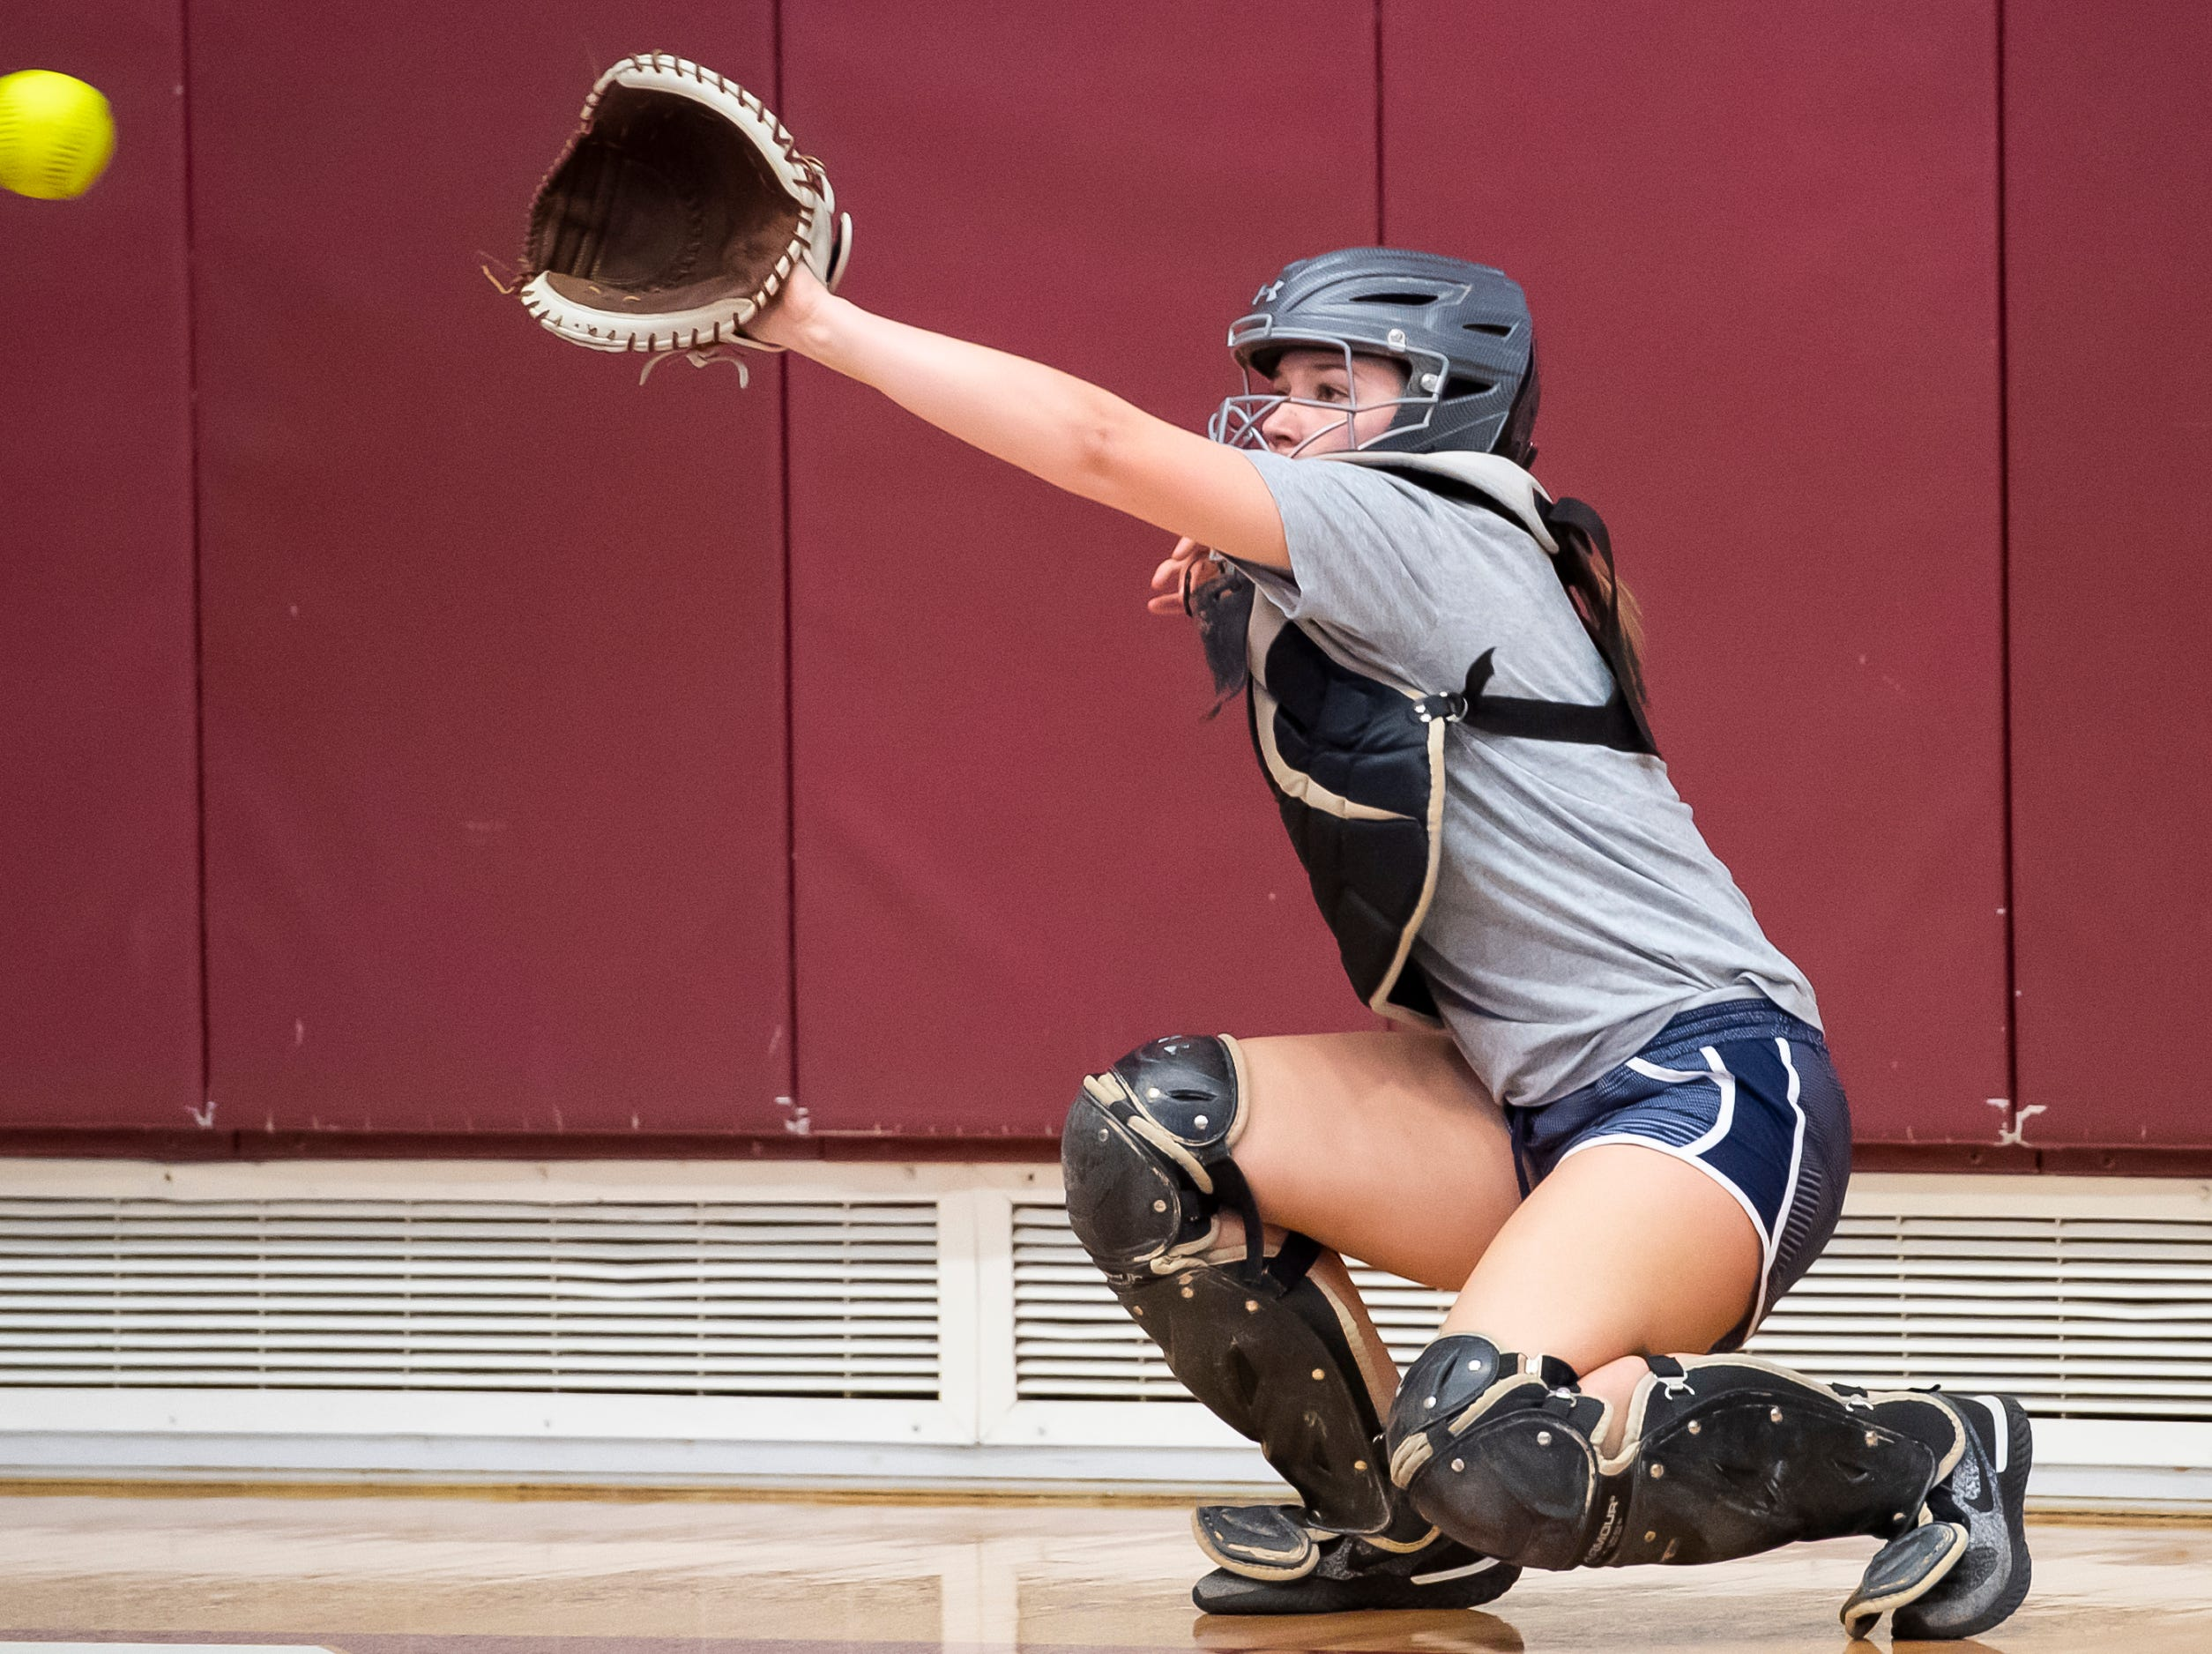 Gettysburg's Kaelyn Blocher reaches to catch a ball from a pitcher during the first day of softball practice inside the Gettysburg High School gym Monday, March 4, 2019.